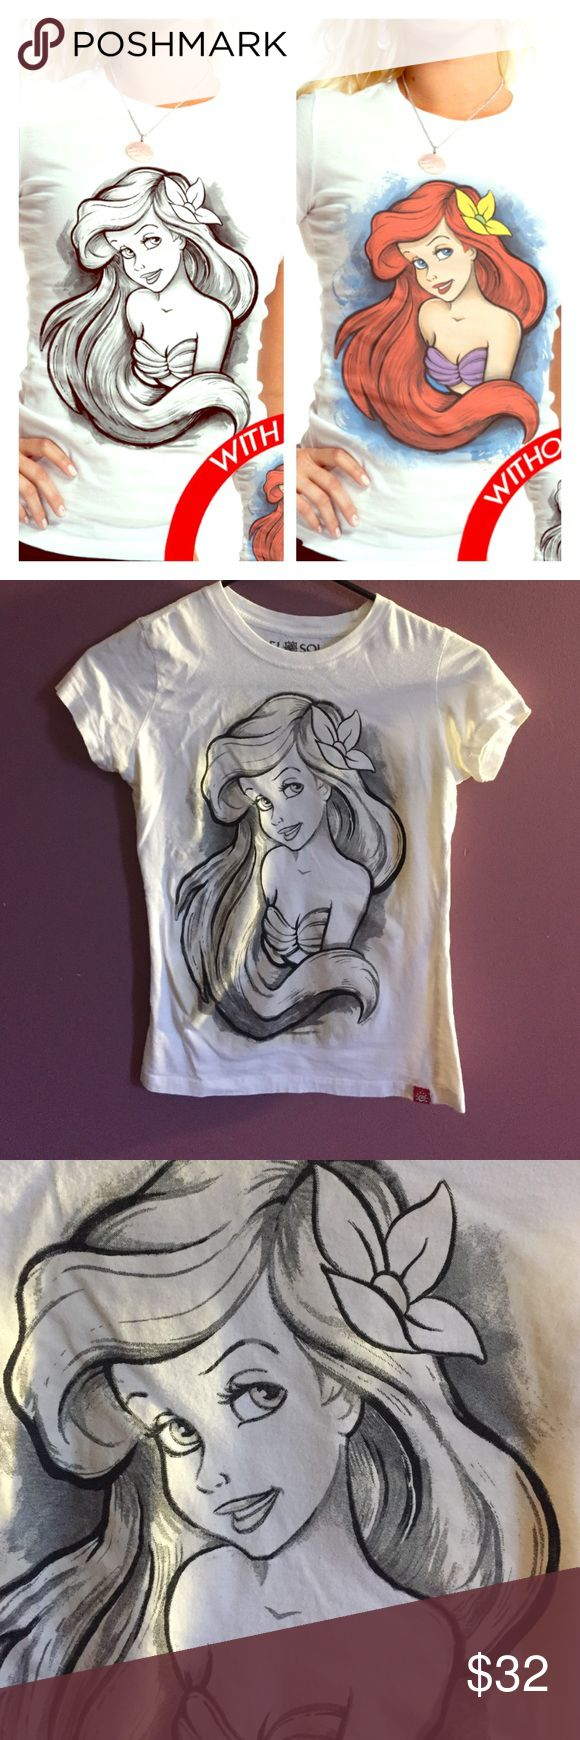 Sun Color Changing Princess Ariel Tee Changes colors in the sun. Not as vibrant as the picture shows but same colors :) Not a lot of sun in Indiana lately but I'll get a colored one up when I get some here 😊 out of stock so price is higher Disney Tops Tees - Short Sleeve